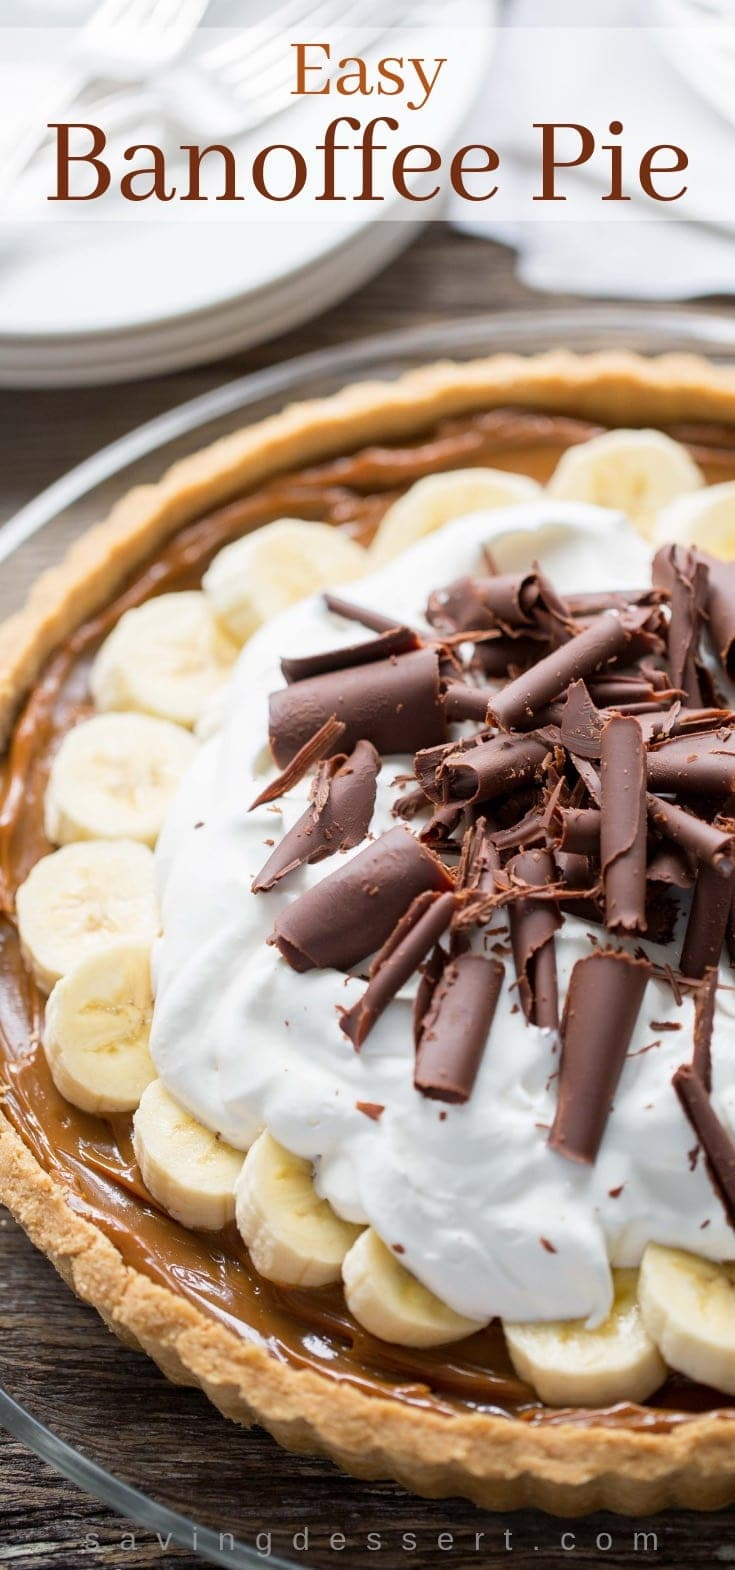 Banoffee Pie topped with whipped cream, bananas and chocolate curls